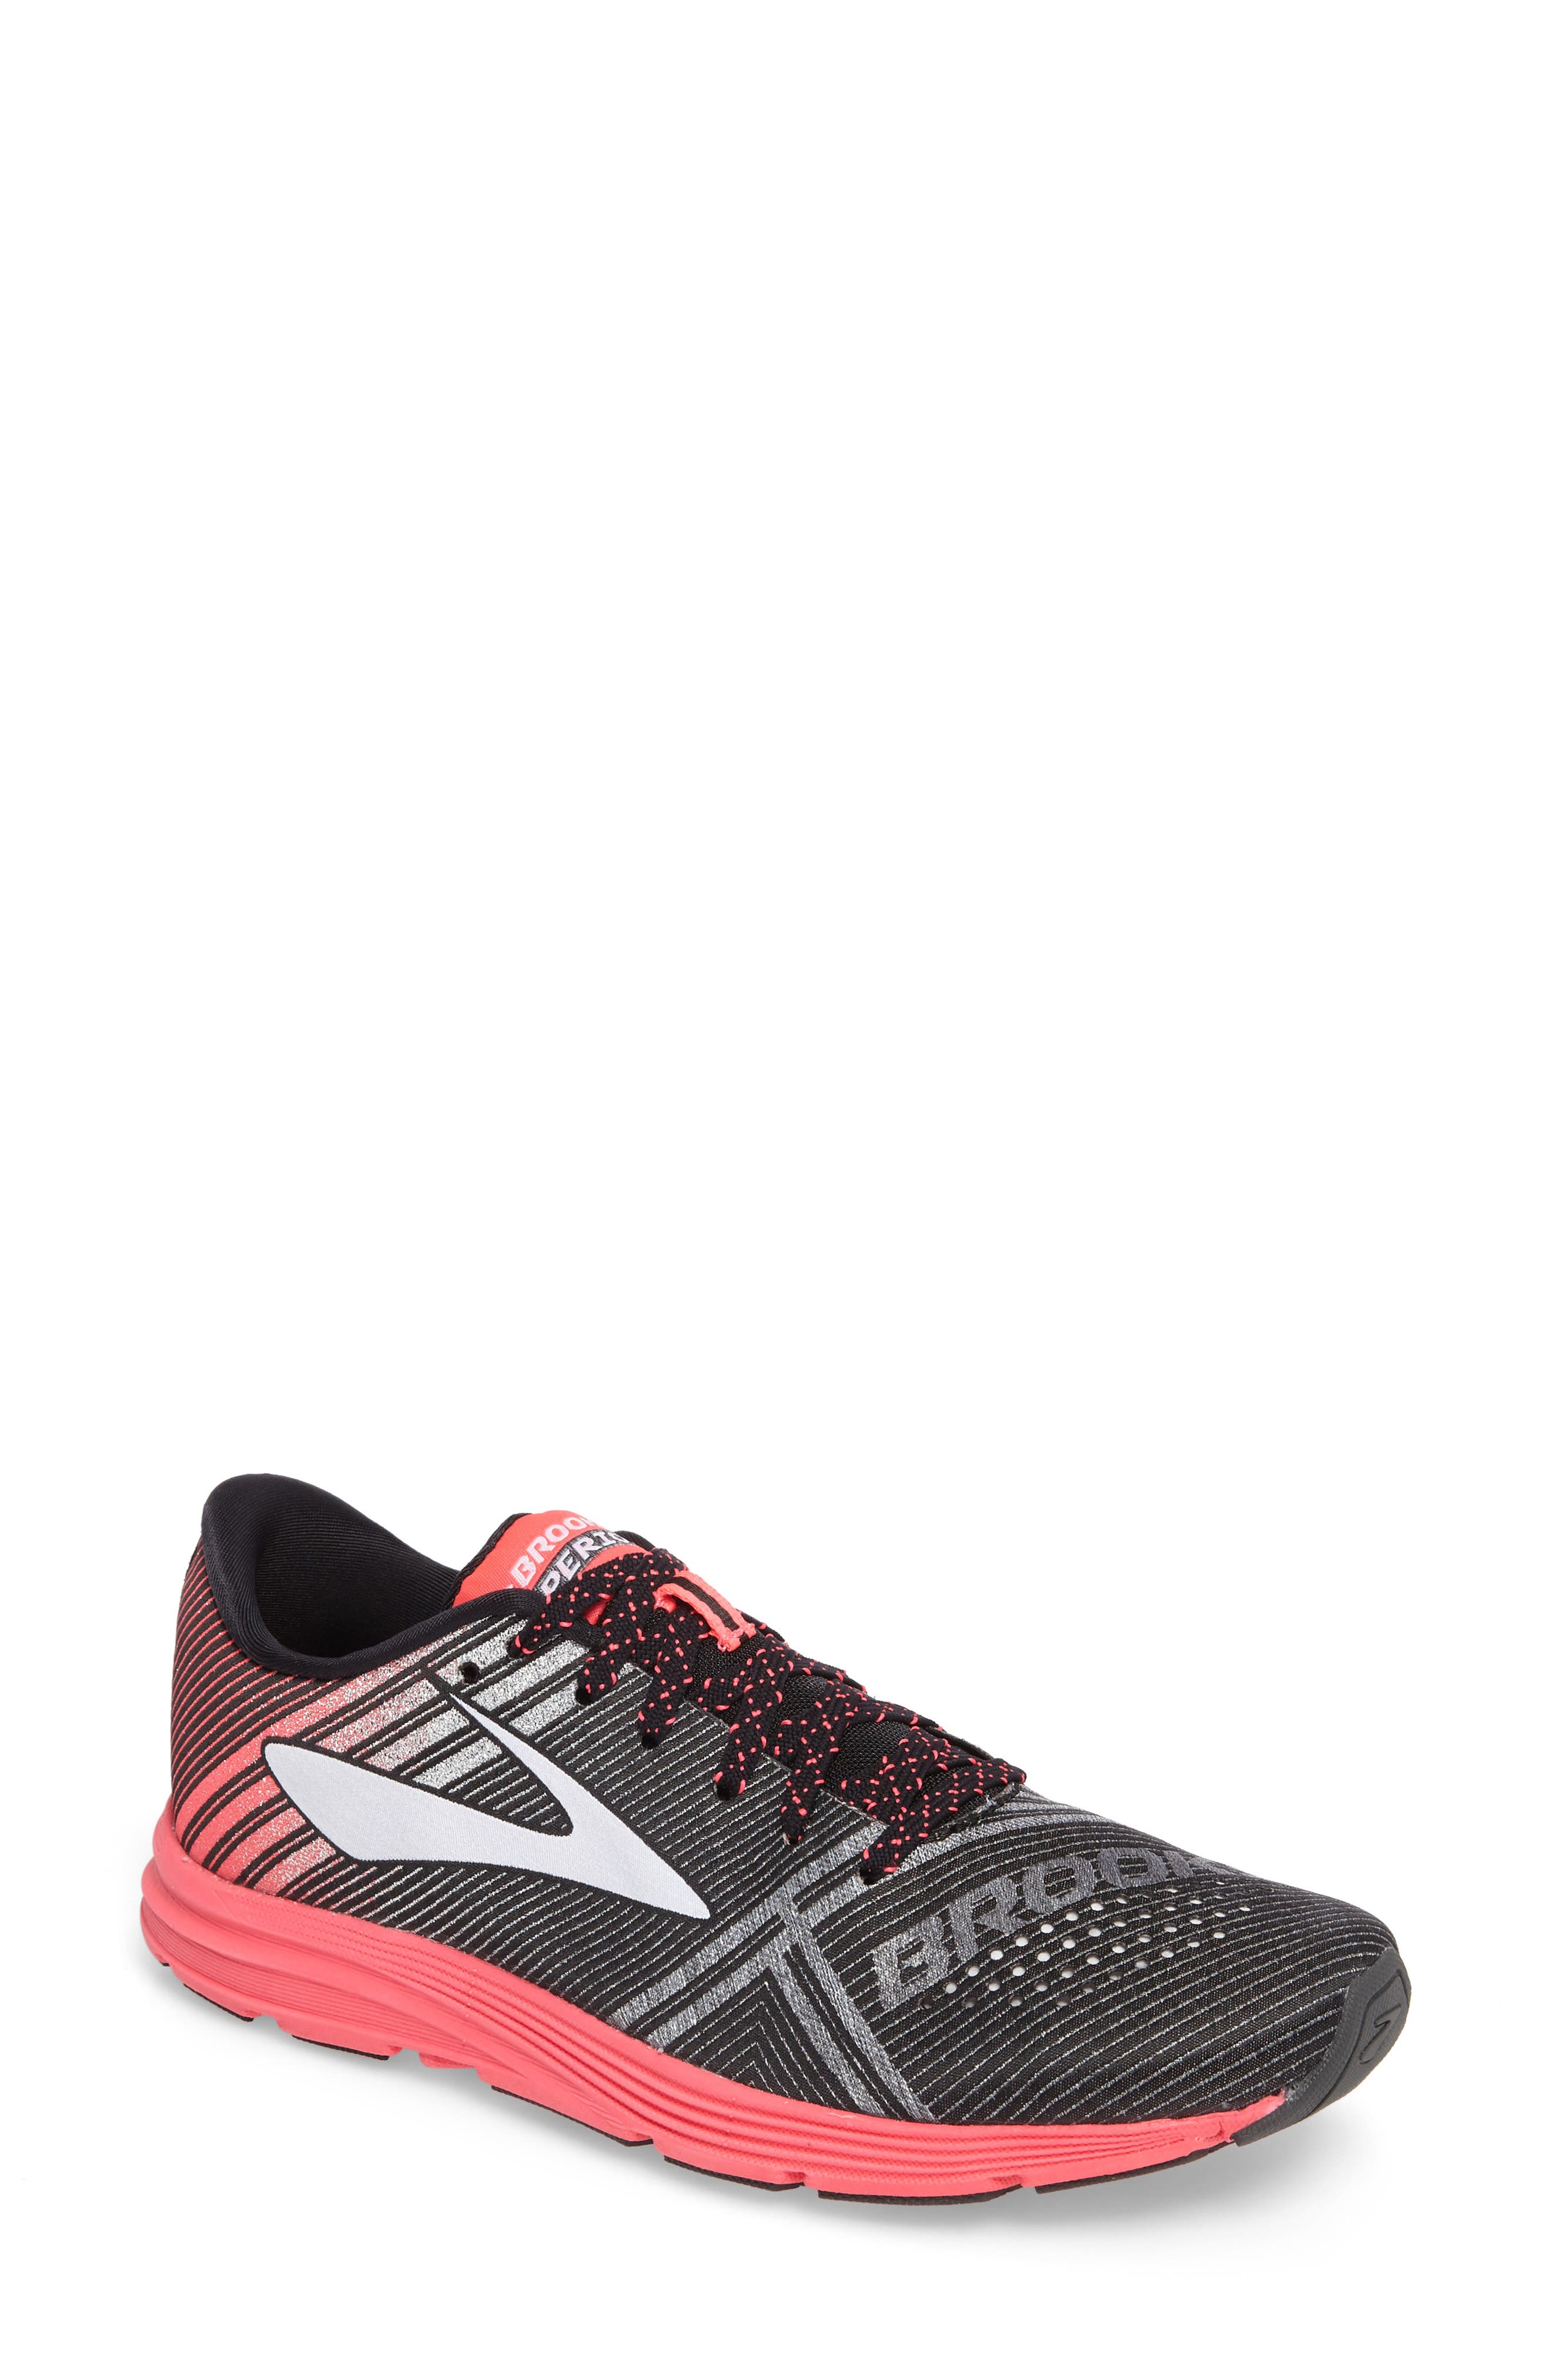 'Hyperion' Running Shoe,                             Main thumbnail 1, color,                             Black/ Pink/ Diamond